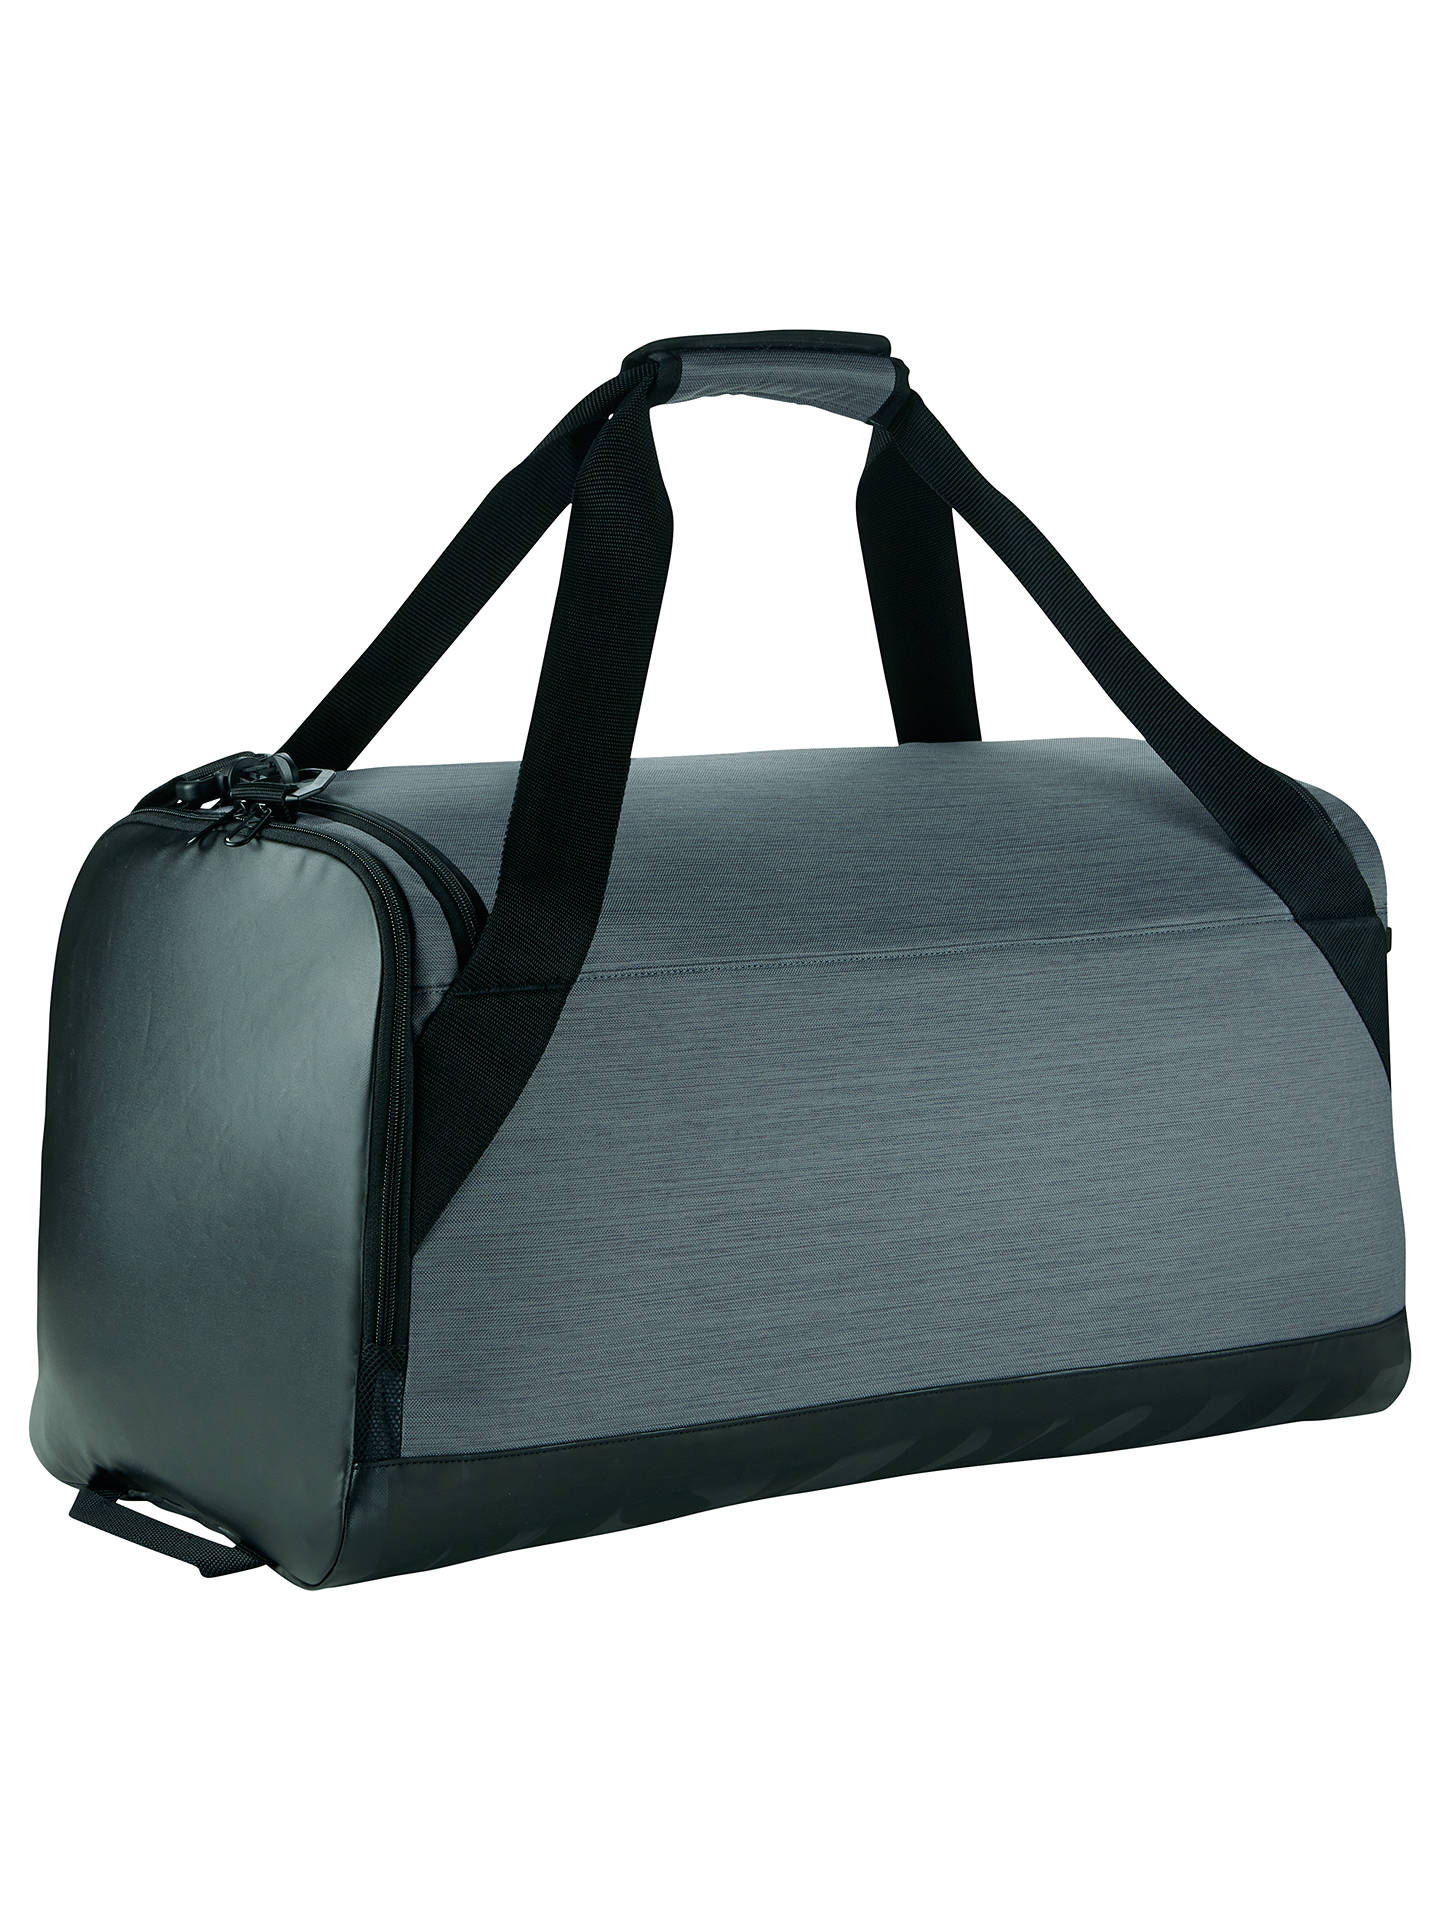 02b2405ca78a ... BuyNike Brasilia Medium Training Duffle Bag